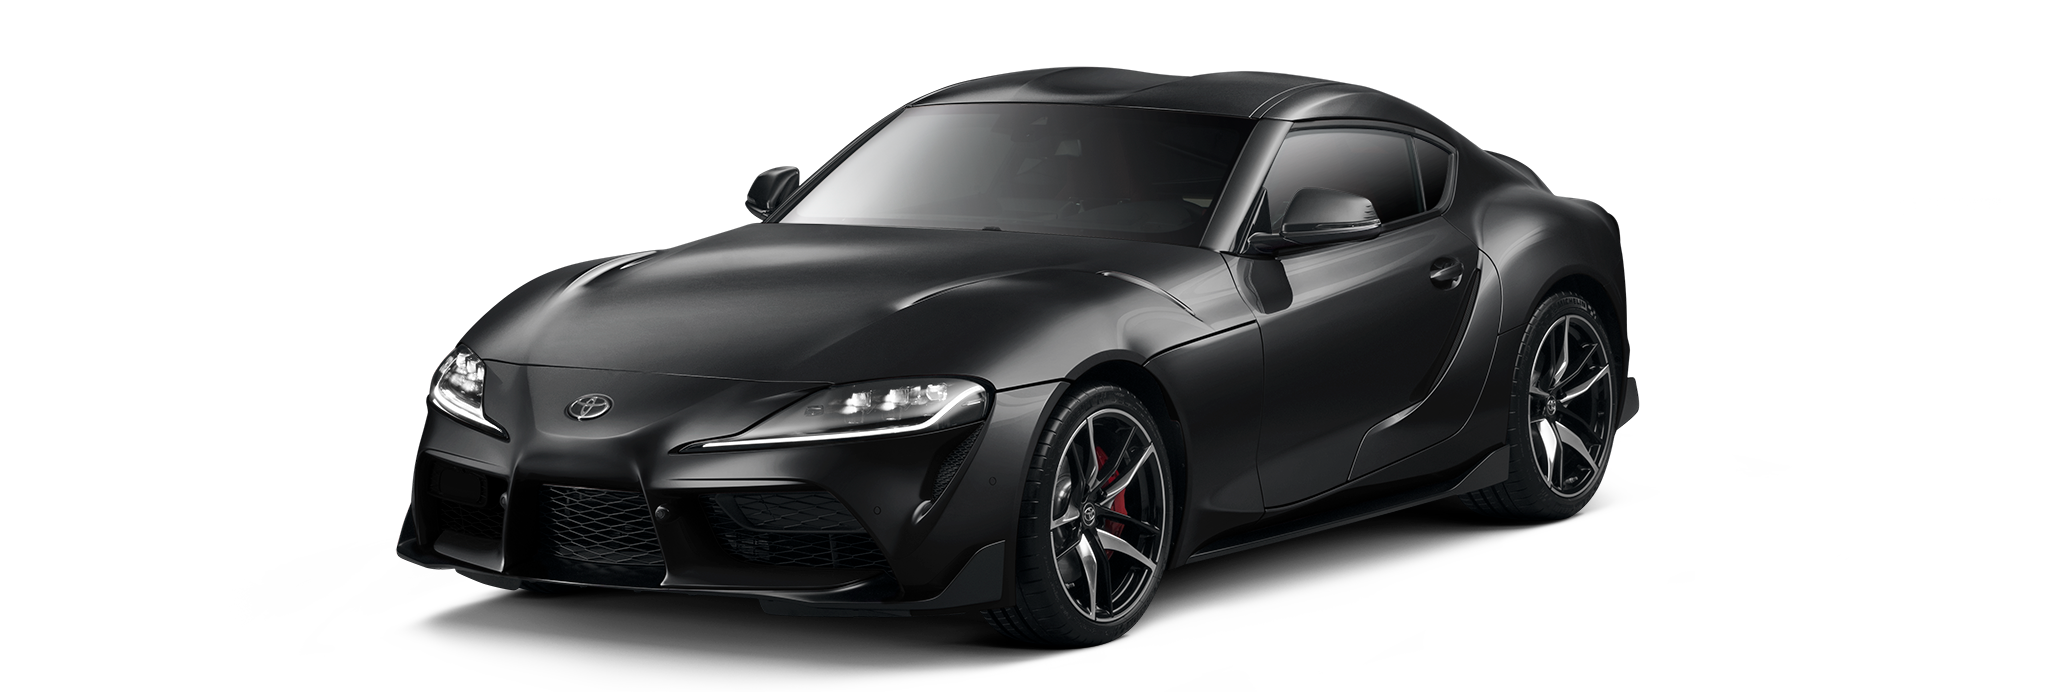 toyota supra black metallic 2020